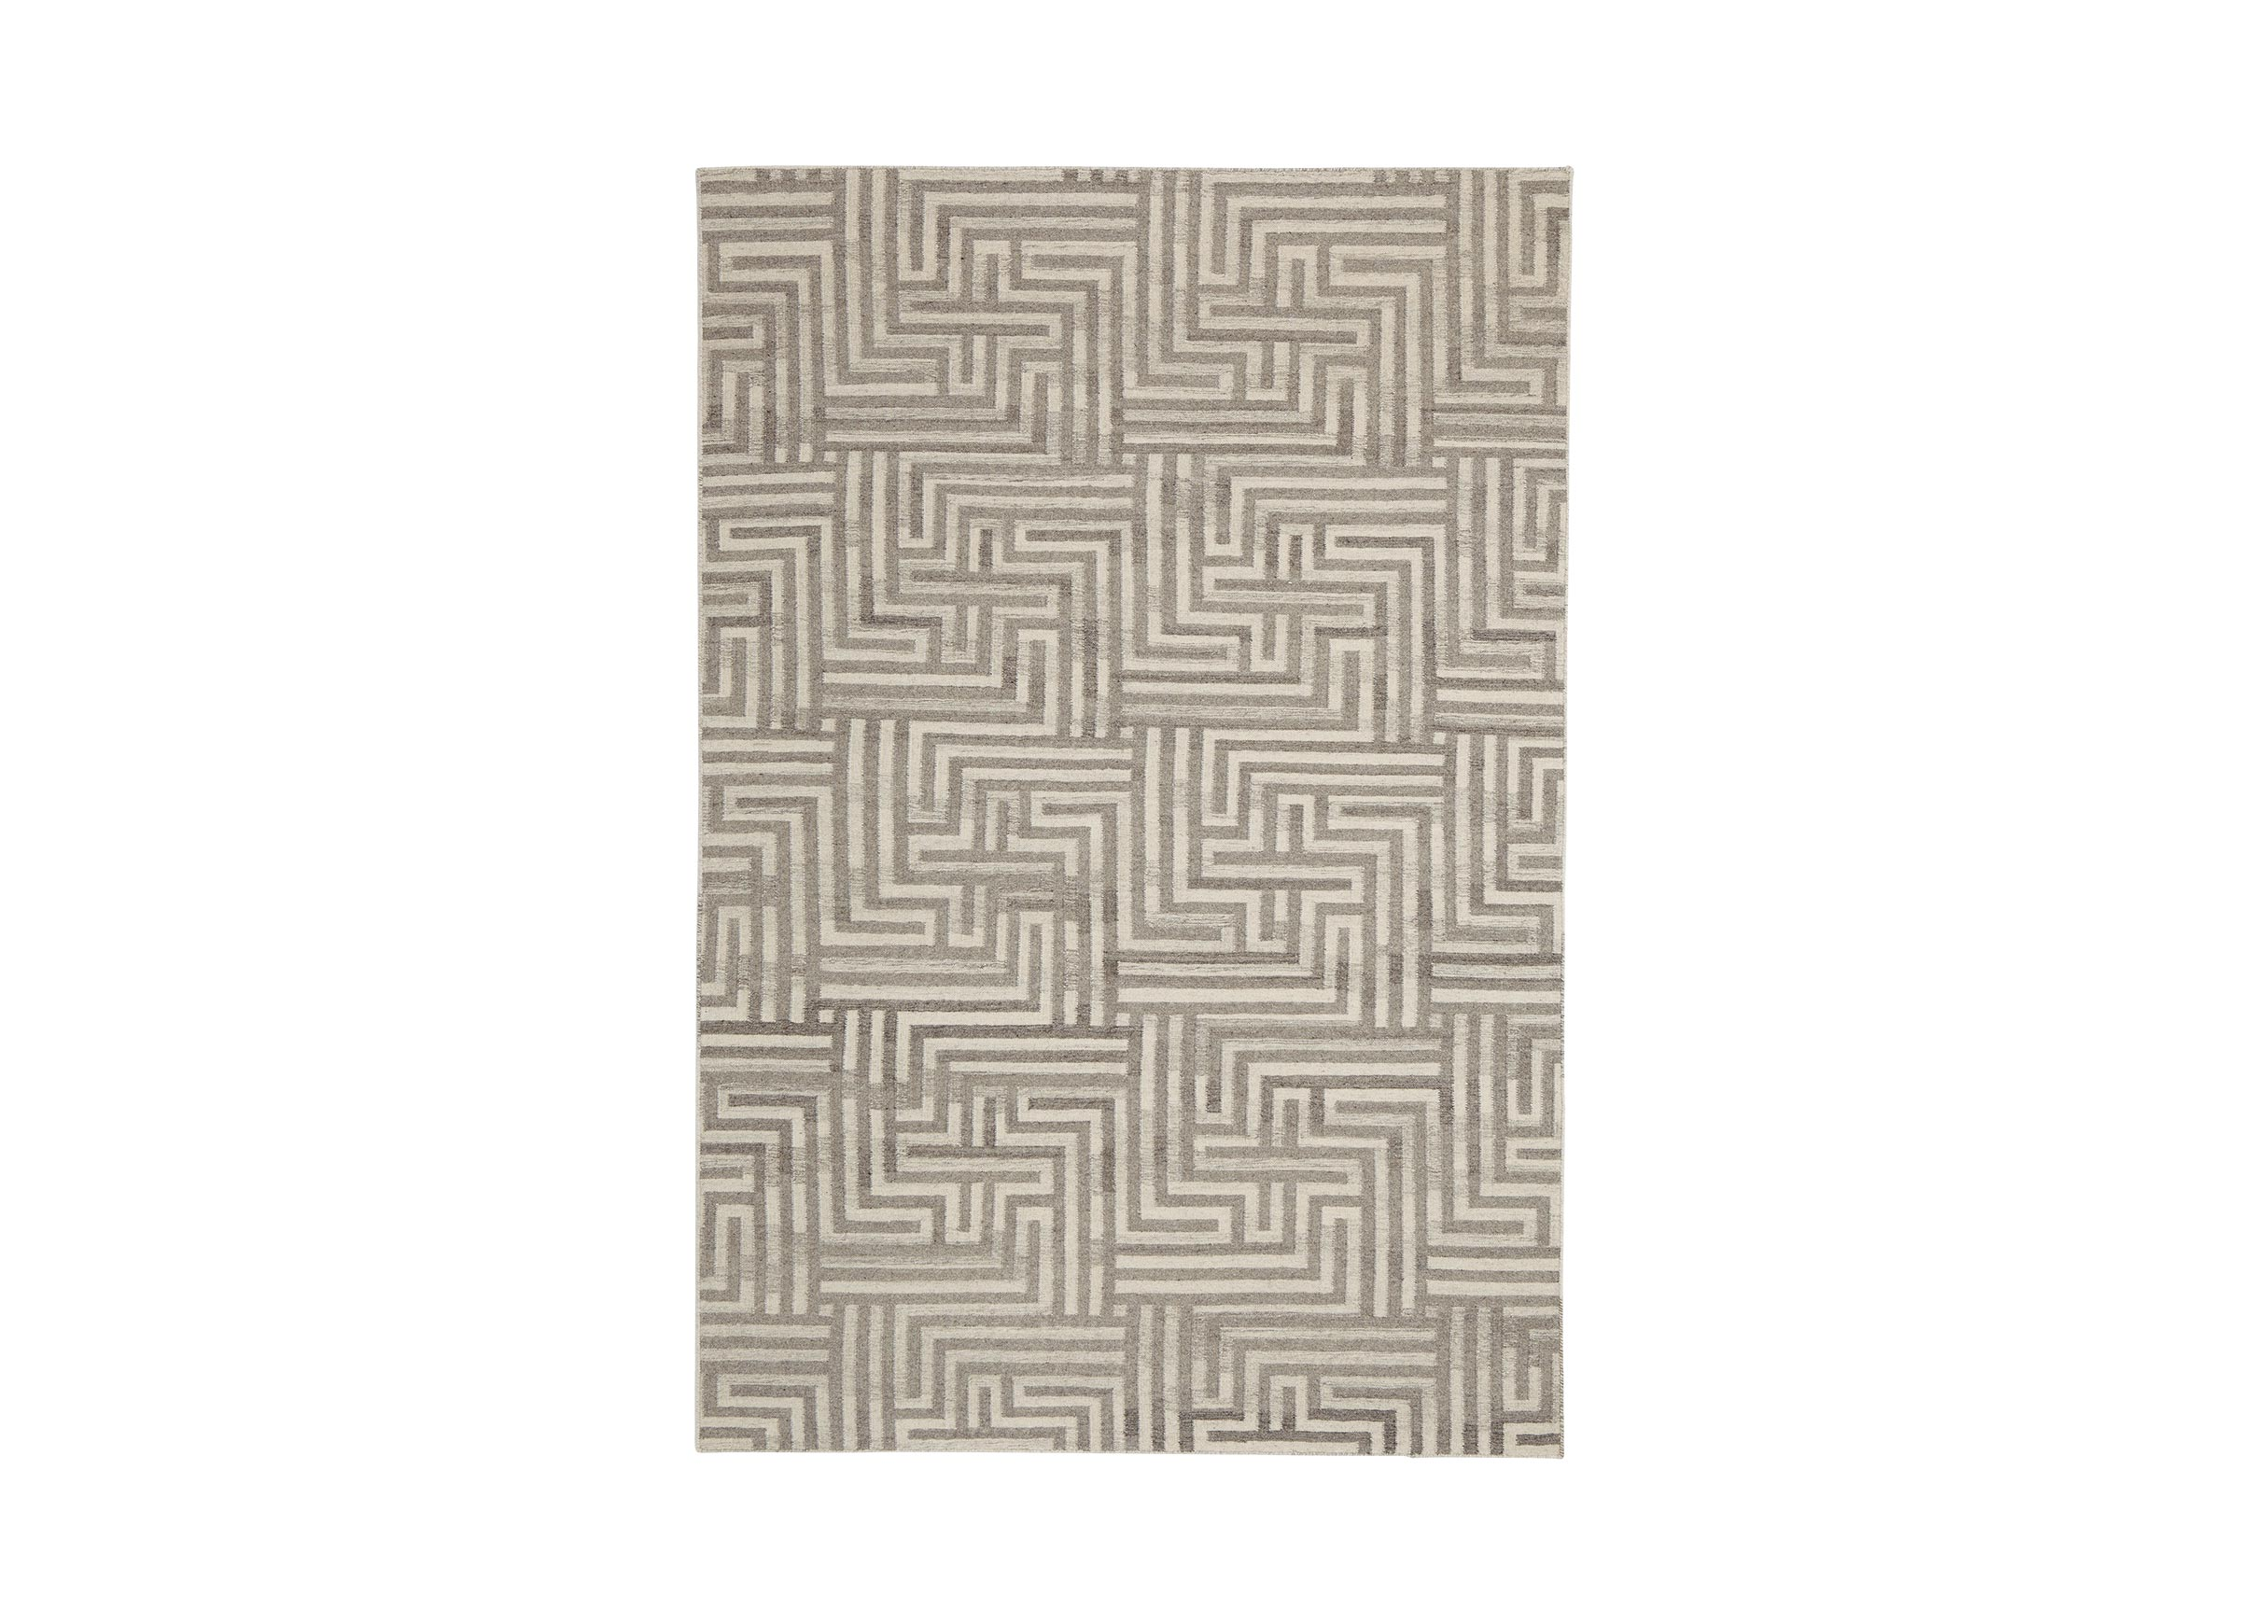 Images Labyrinth Rug Ivory Gray Large